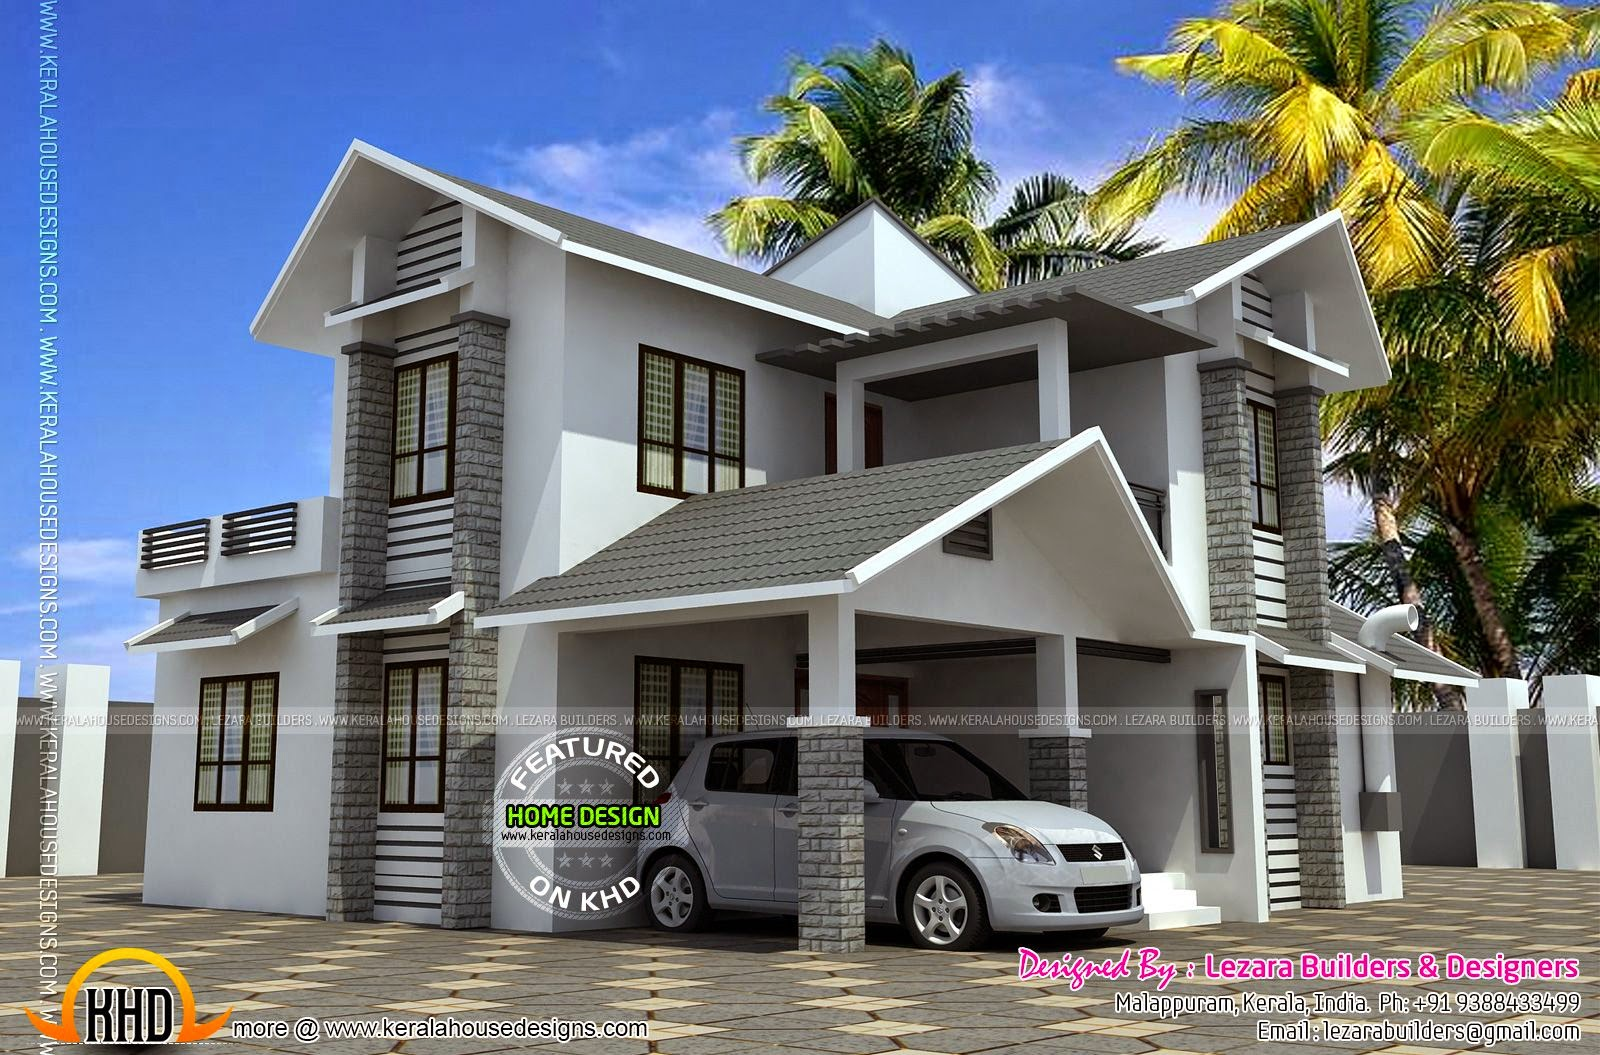 Sloping roof 1600 square feet house kerala home design for 1600 square foot house